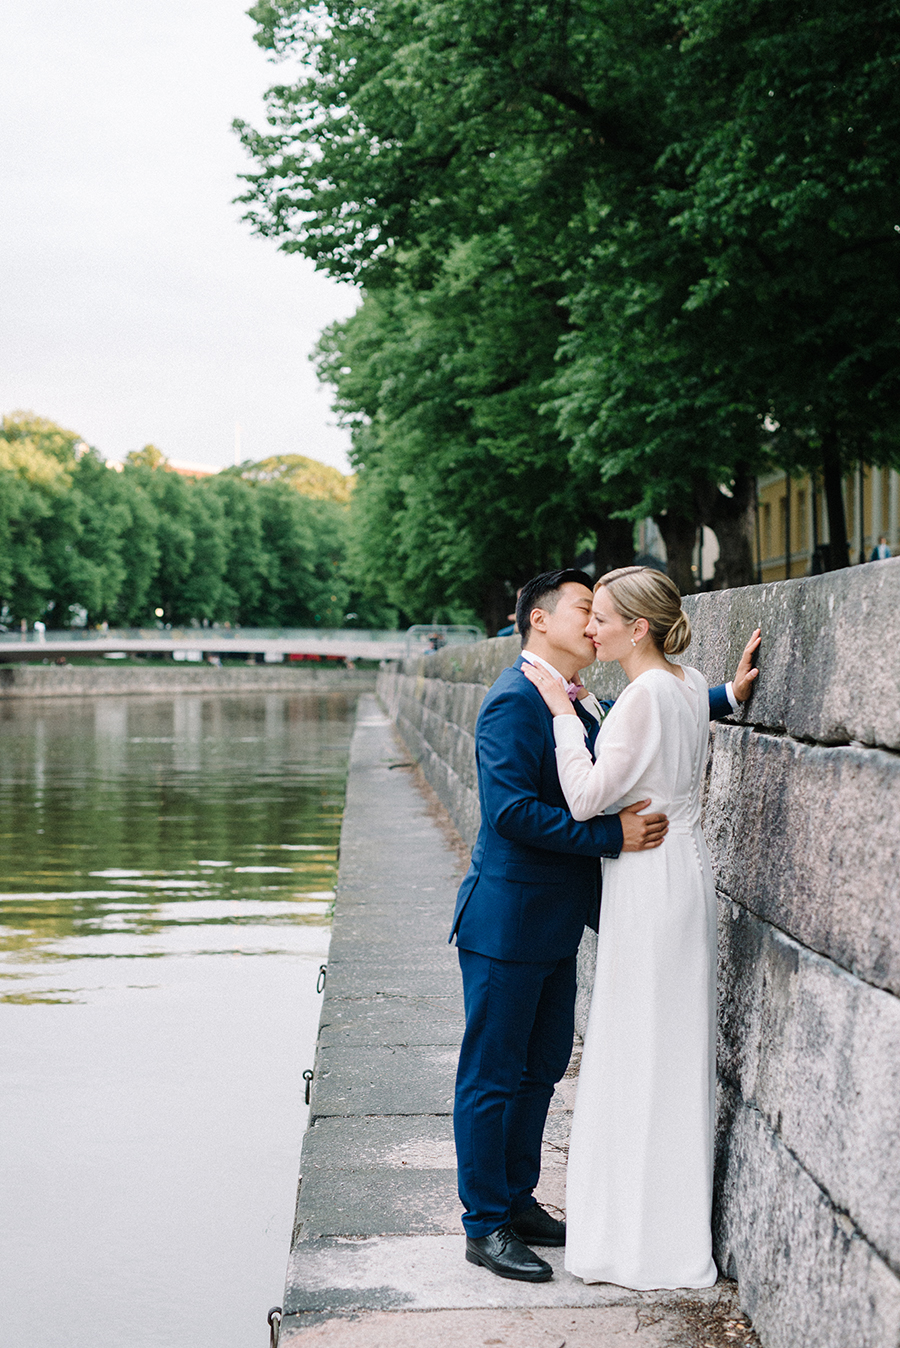 Justina and Lee, Chinese-Lithuanian wedding in Turku, Restaurant Tårget (118).jpg